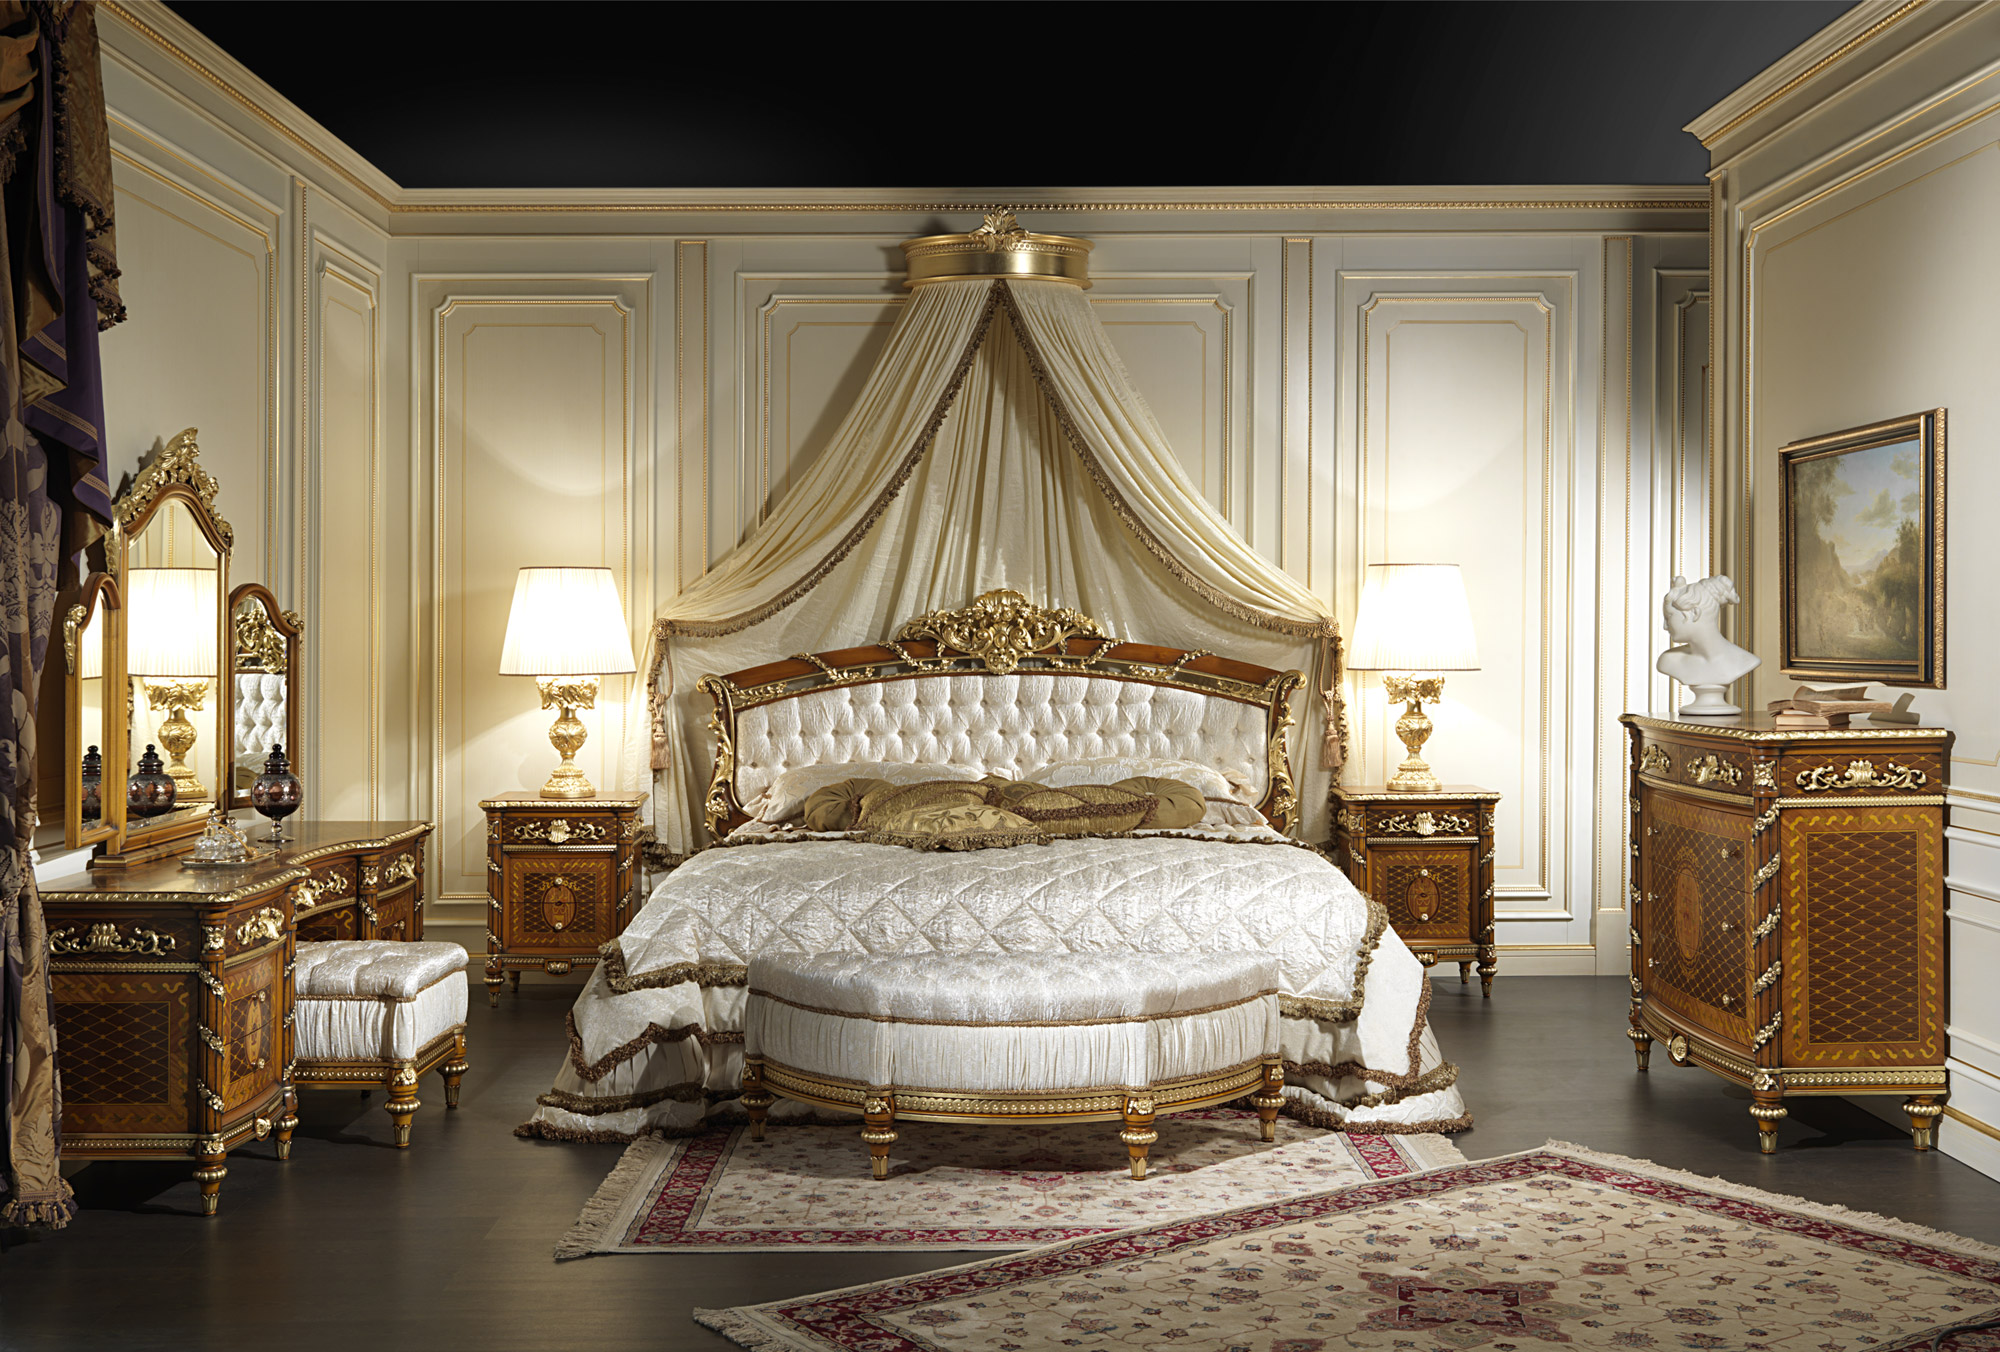 Furniture For Walnut Bedroom Of The Louis Xvi Collection Noce E Intarsi Art 2017